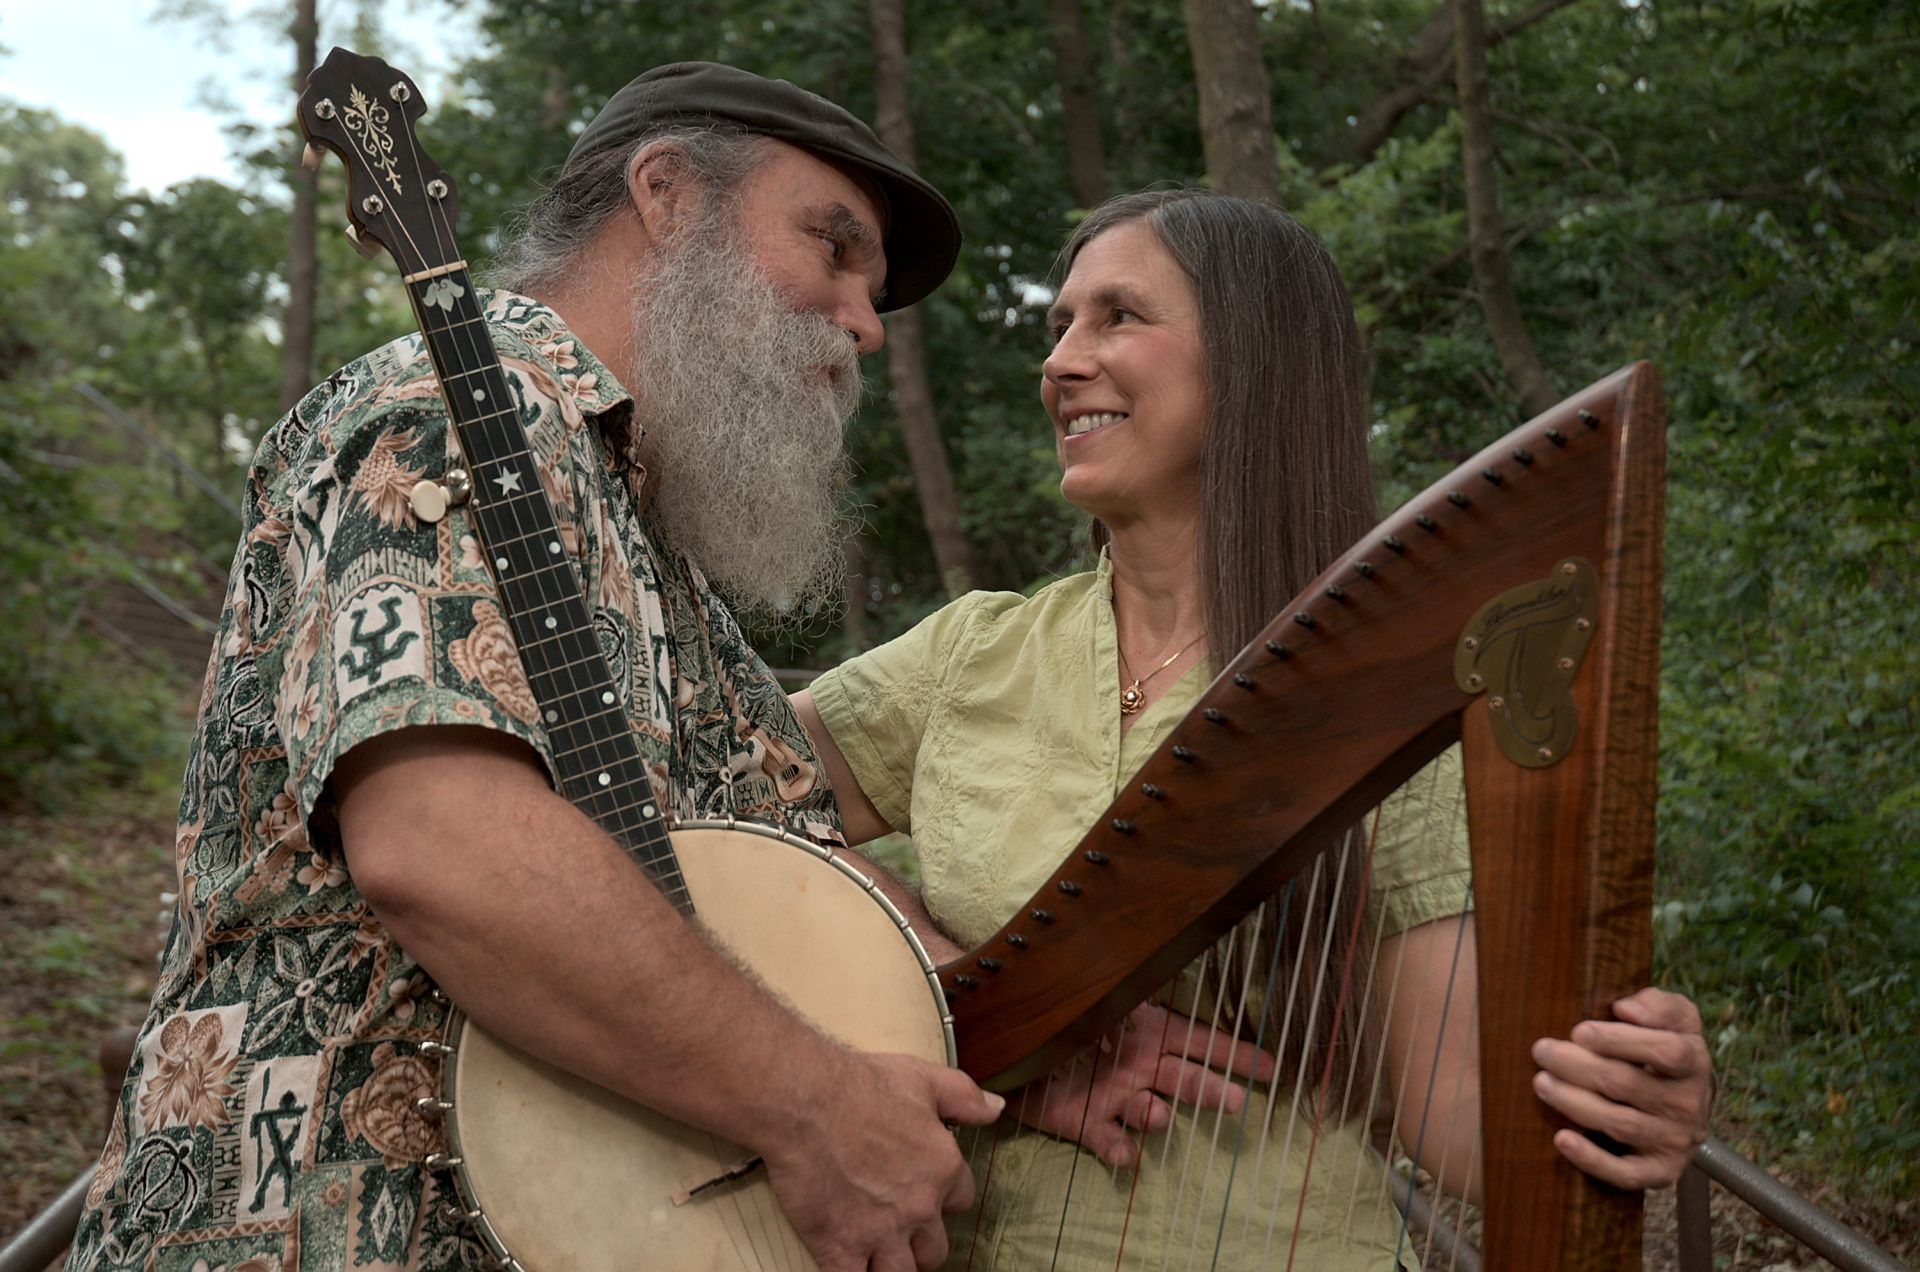 Folk duo Curtis and Loretta on The Roadhouse